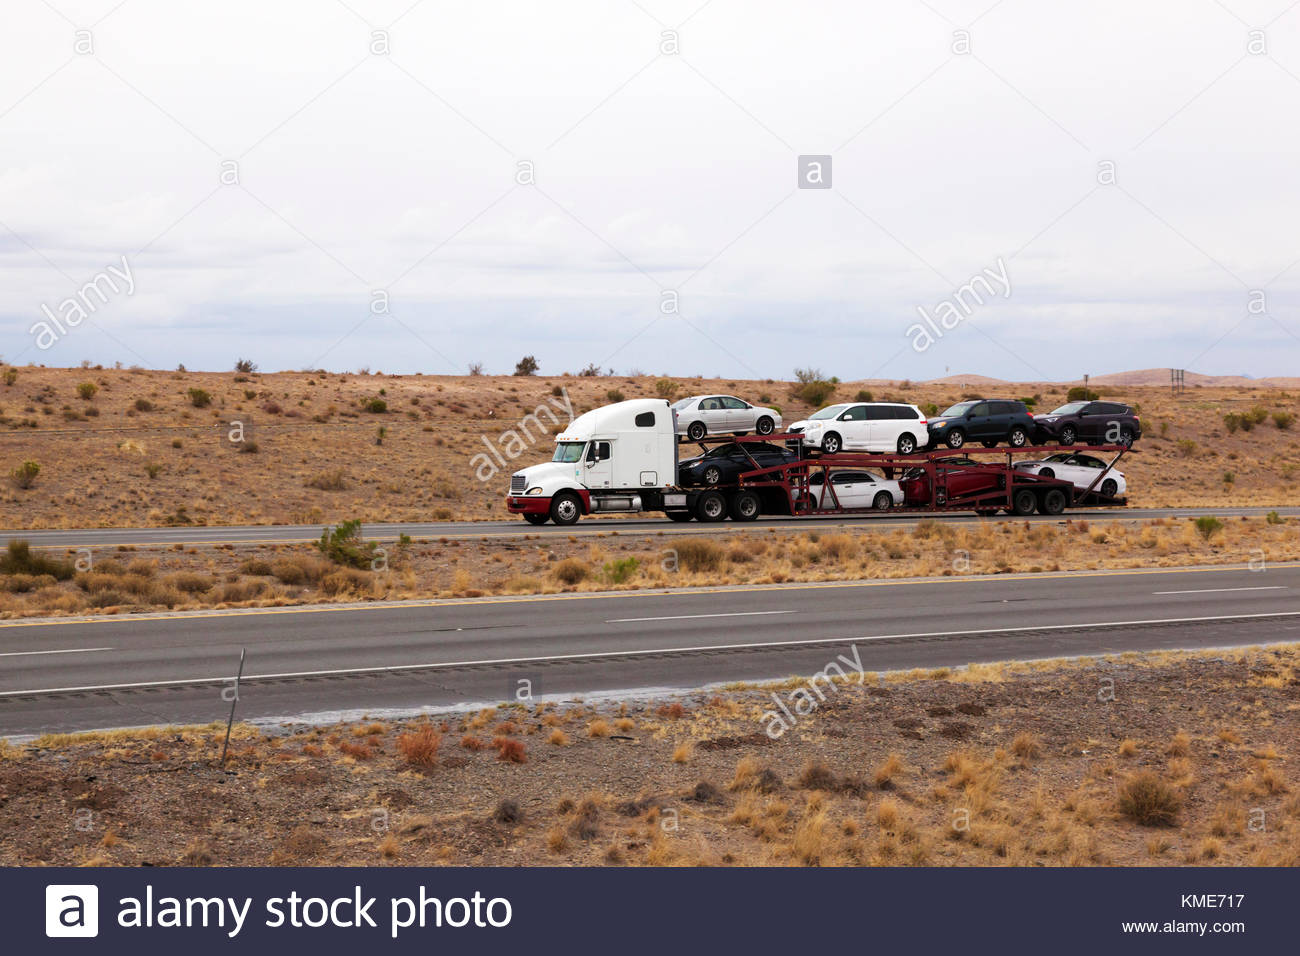 Semi-tractor pulling car hauler trailer on interstate in southeasterrn Arizona, USA, driver visible in cab Stock Photo